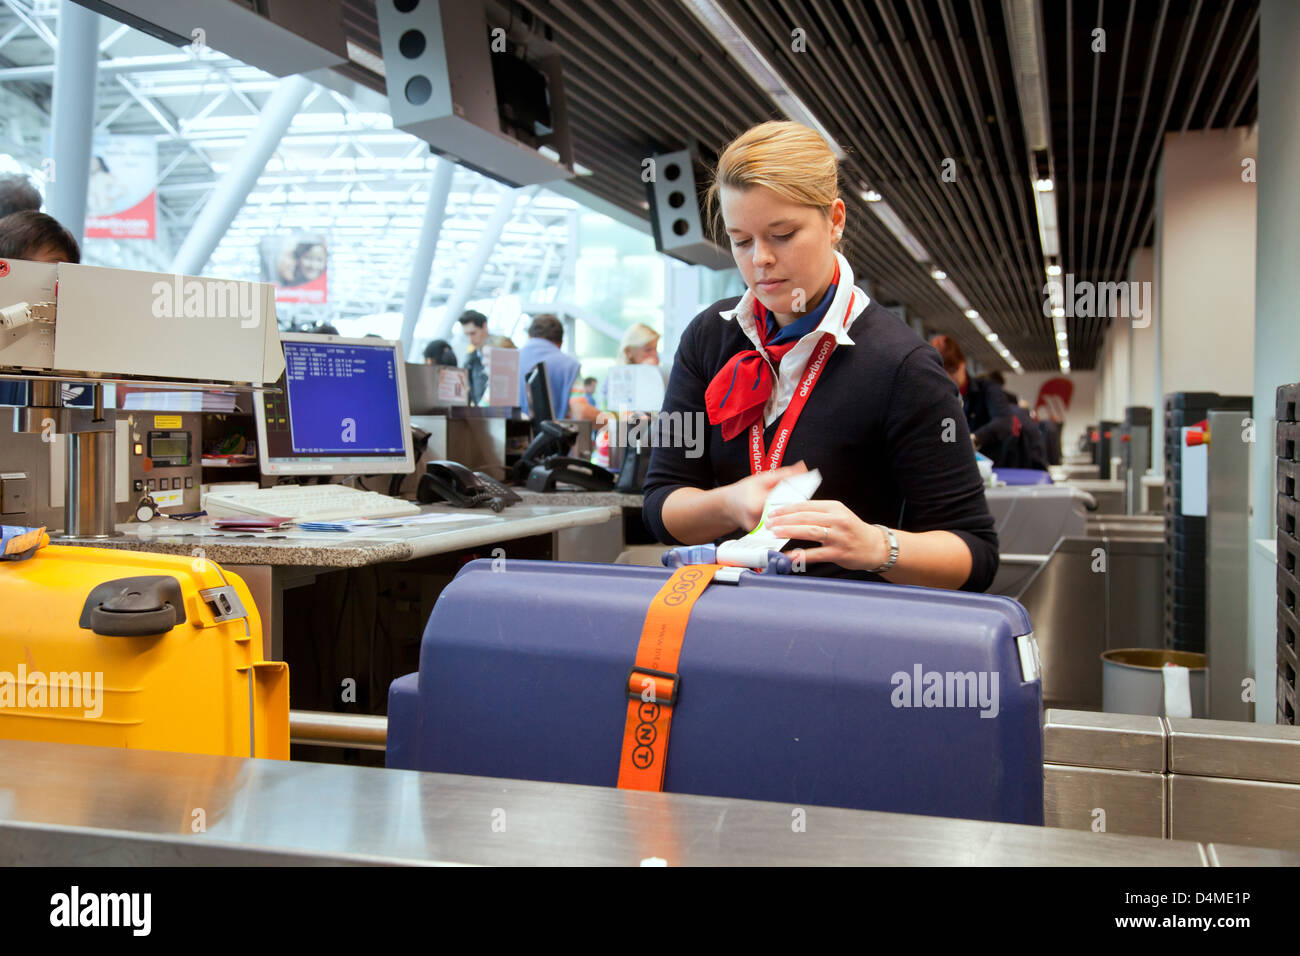 Duesseldorf, Germany, ground staff at airberlin check-in desk at the airport Duesseldorf International - Stock Image